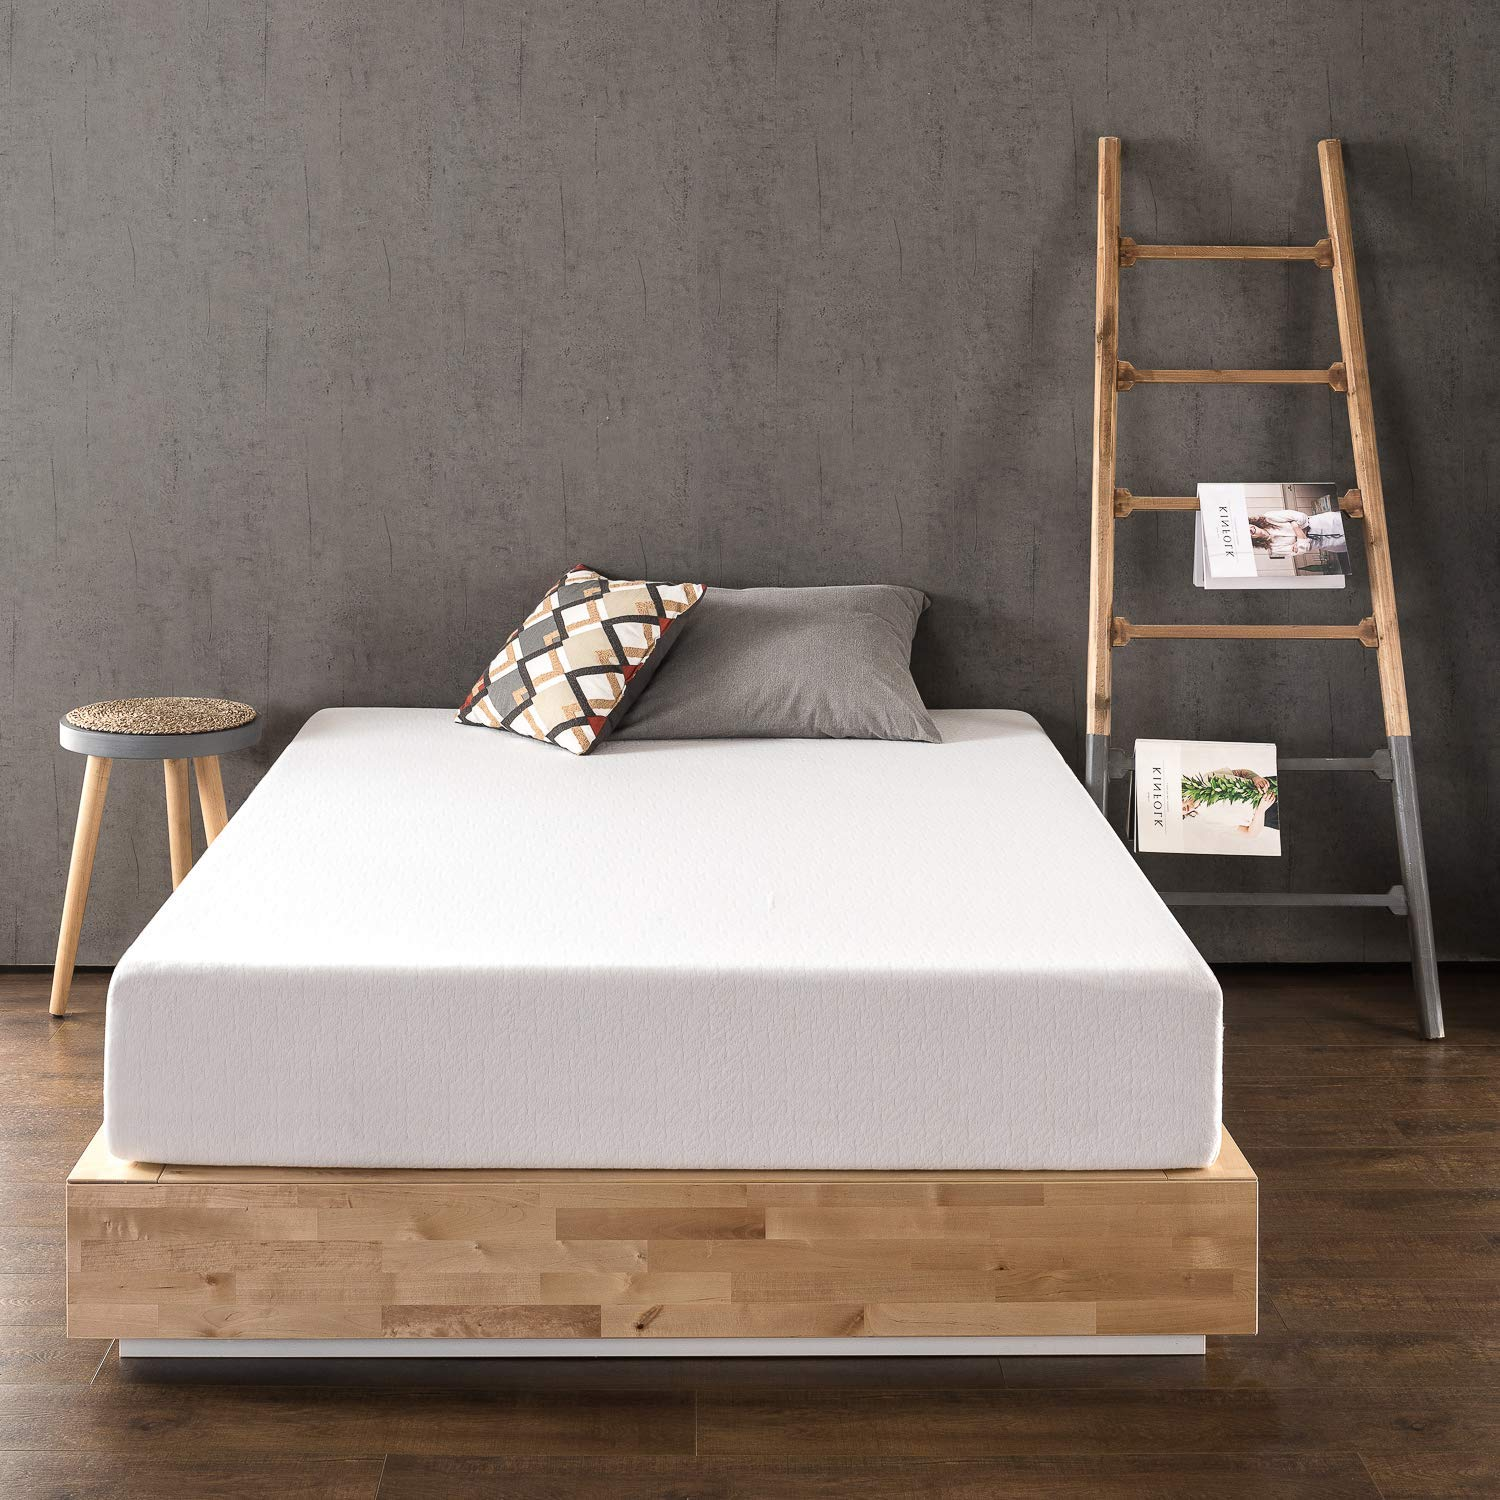 Best Price Bamboo Mattress Review by www.snoremagazine.com